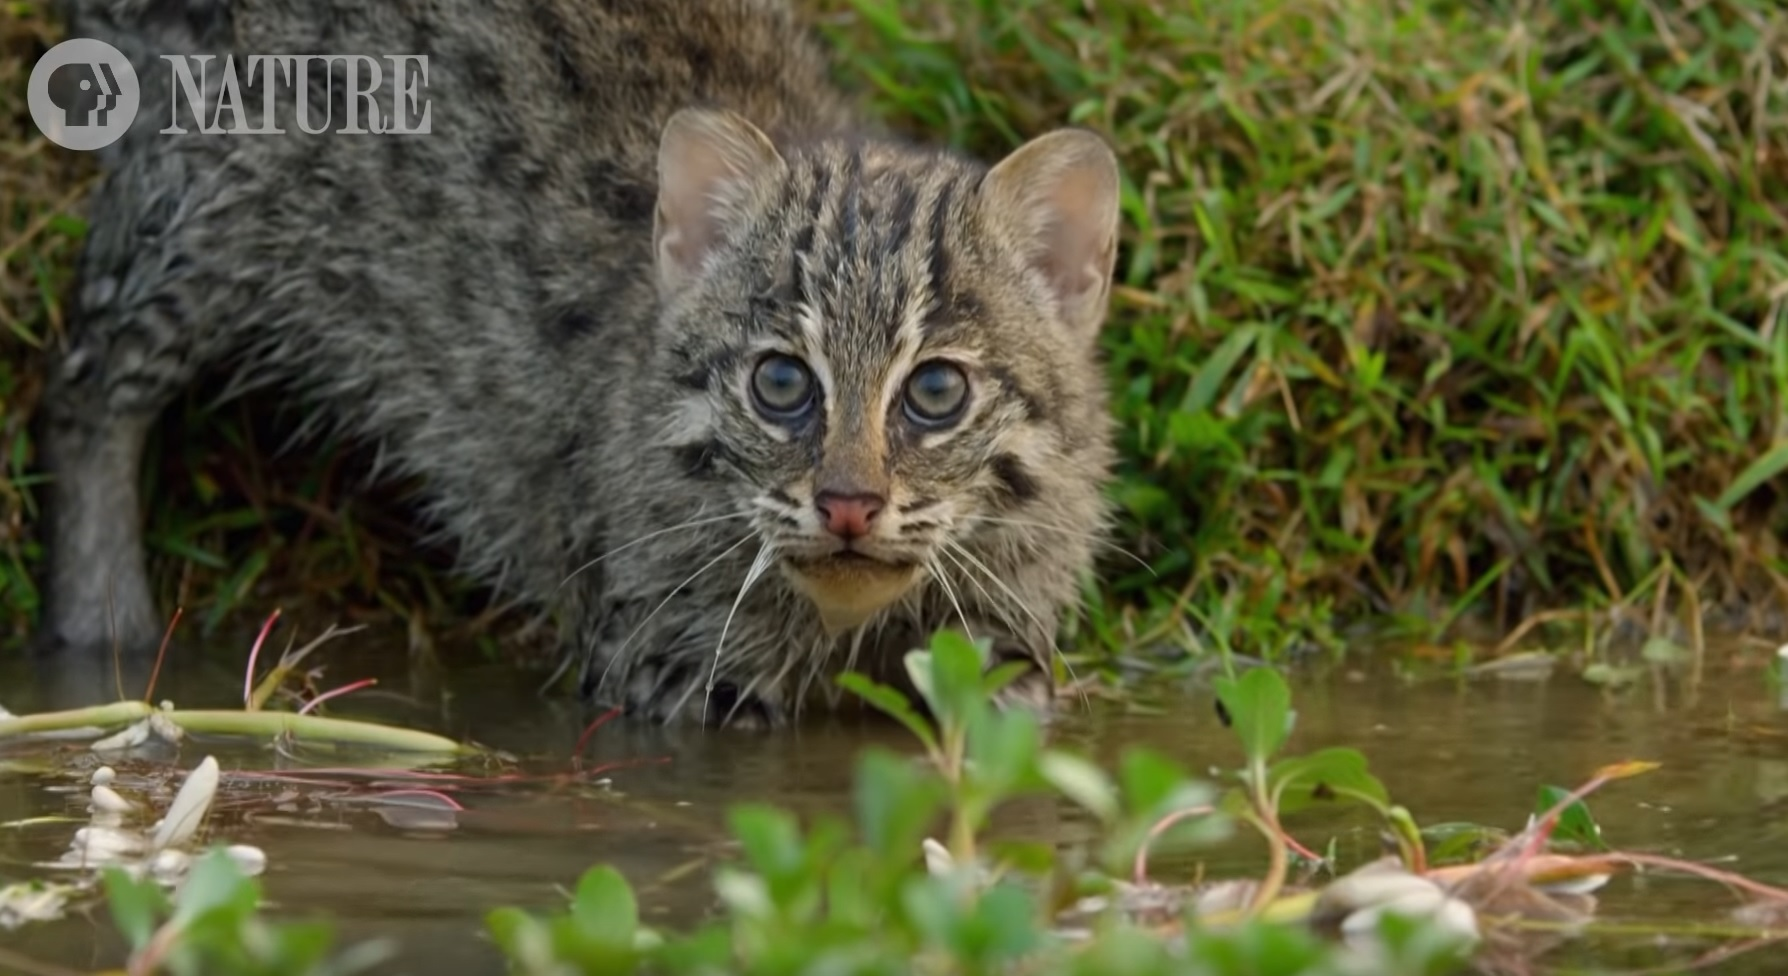 Fishing Kittens First Time In Water